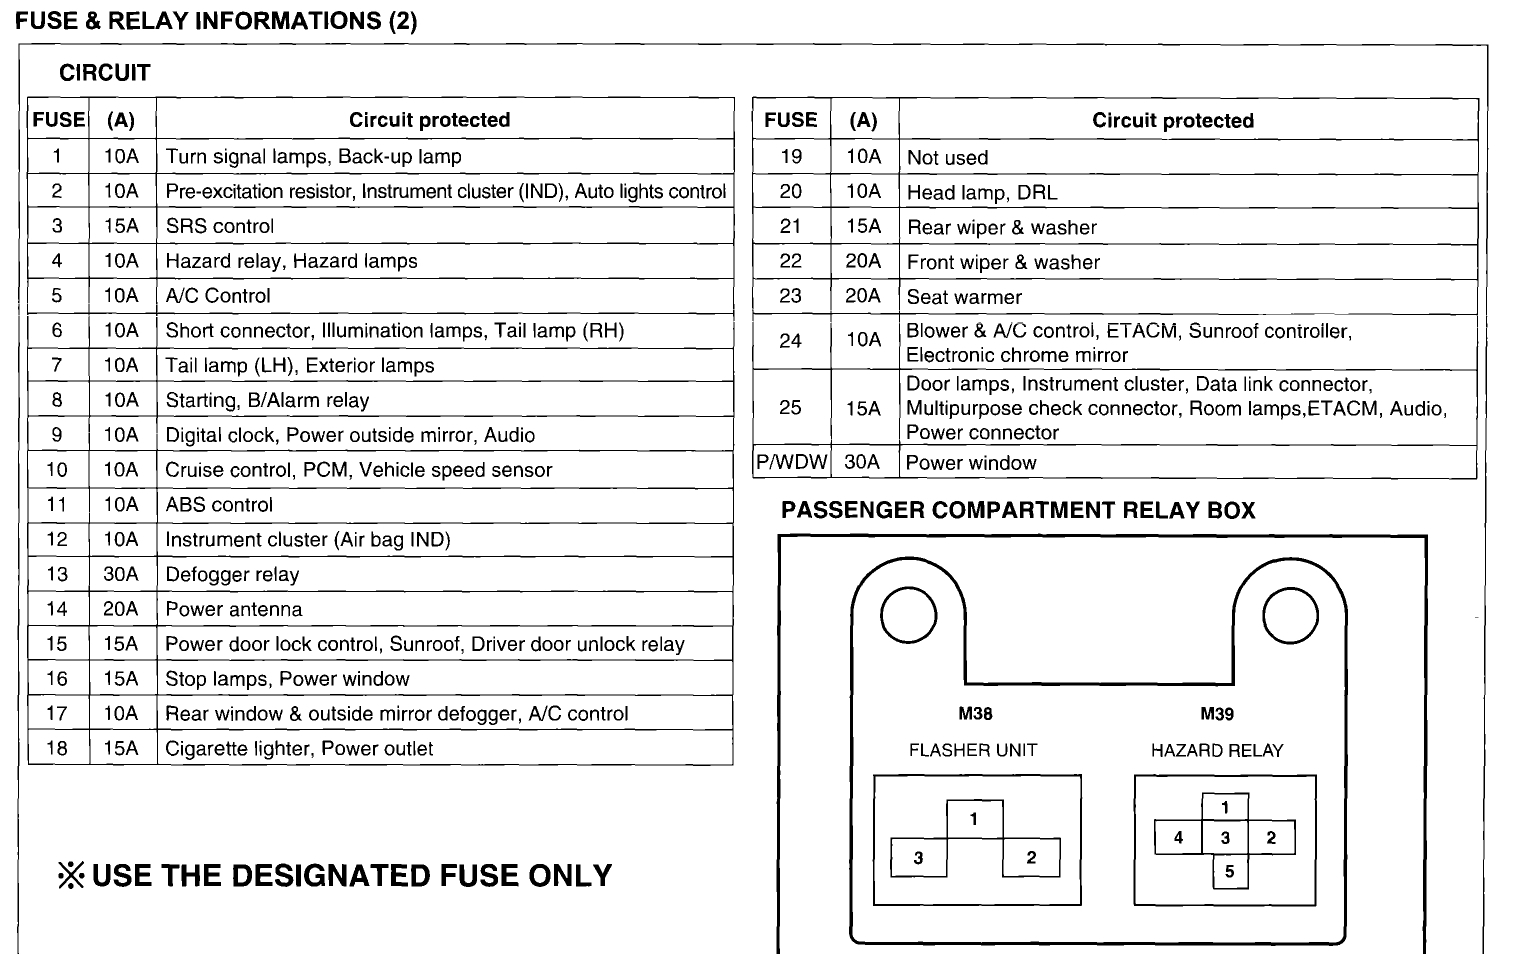 Hyundai Fuse Box Power Connector Site Www Forums Com 60 Azera Diagram Original 2002 Xg350 Ford F550 At